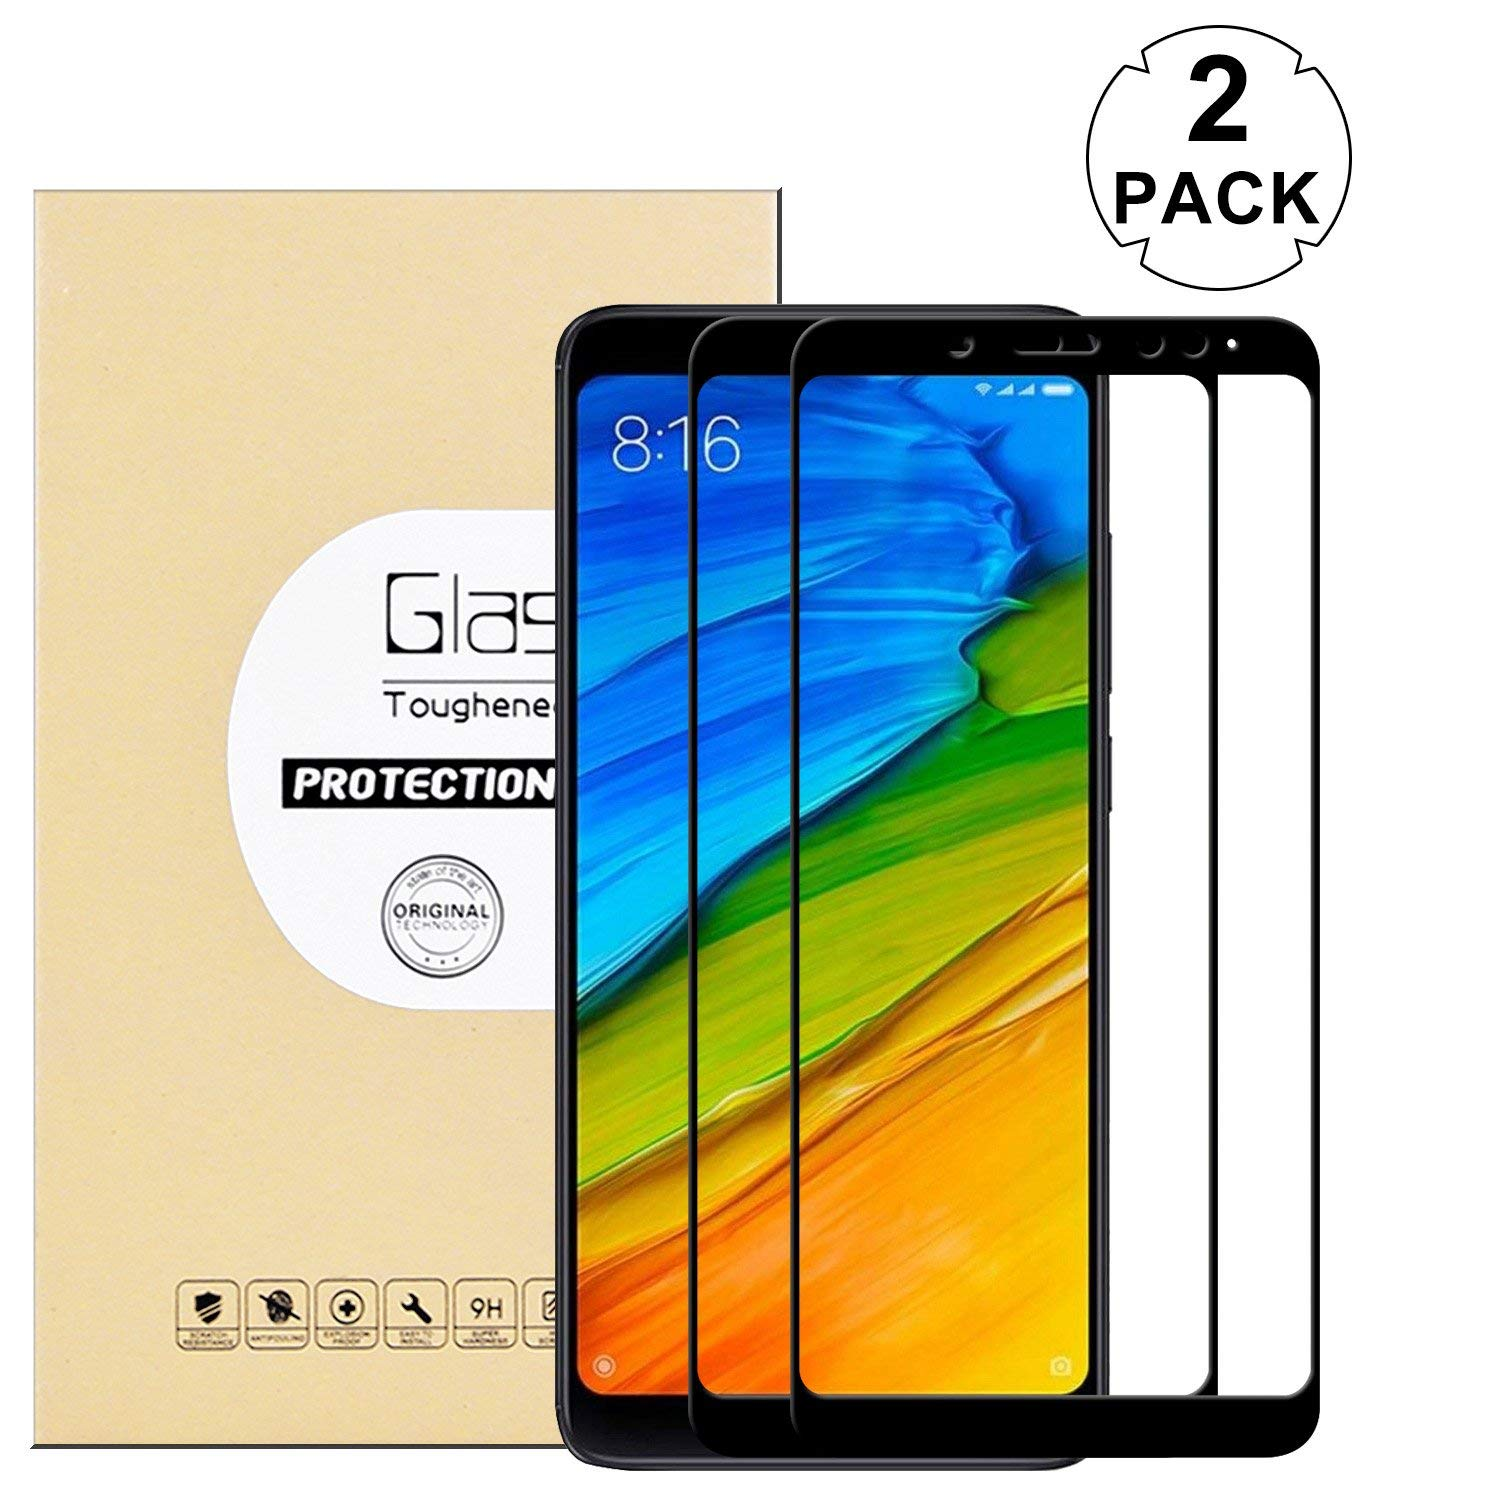 "KTTWO Redmi Note 5 Pro Screen Protector, (2PACK) Full Cover Anti-Scratch Bubble-Free Tempered Glass Screen Protector with Full Glue for Redmi Note 5 Pro 5.99""(Black)"